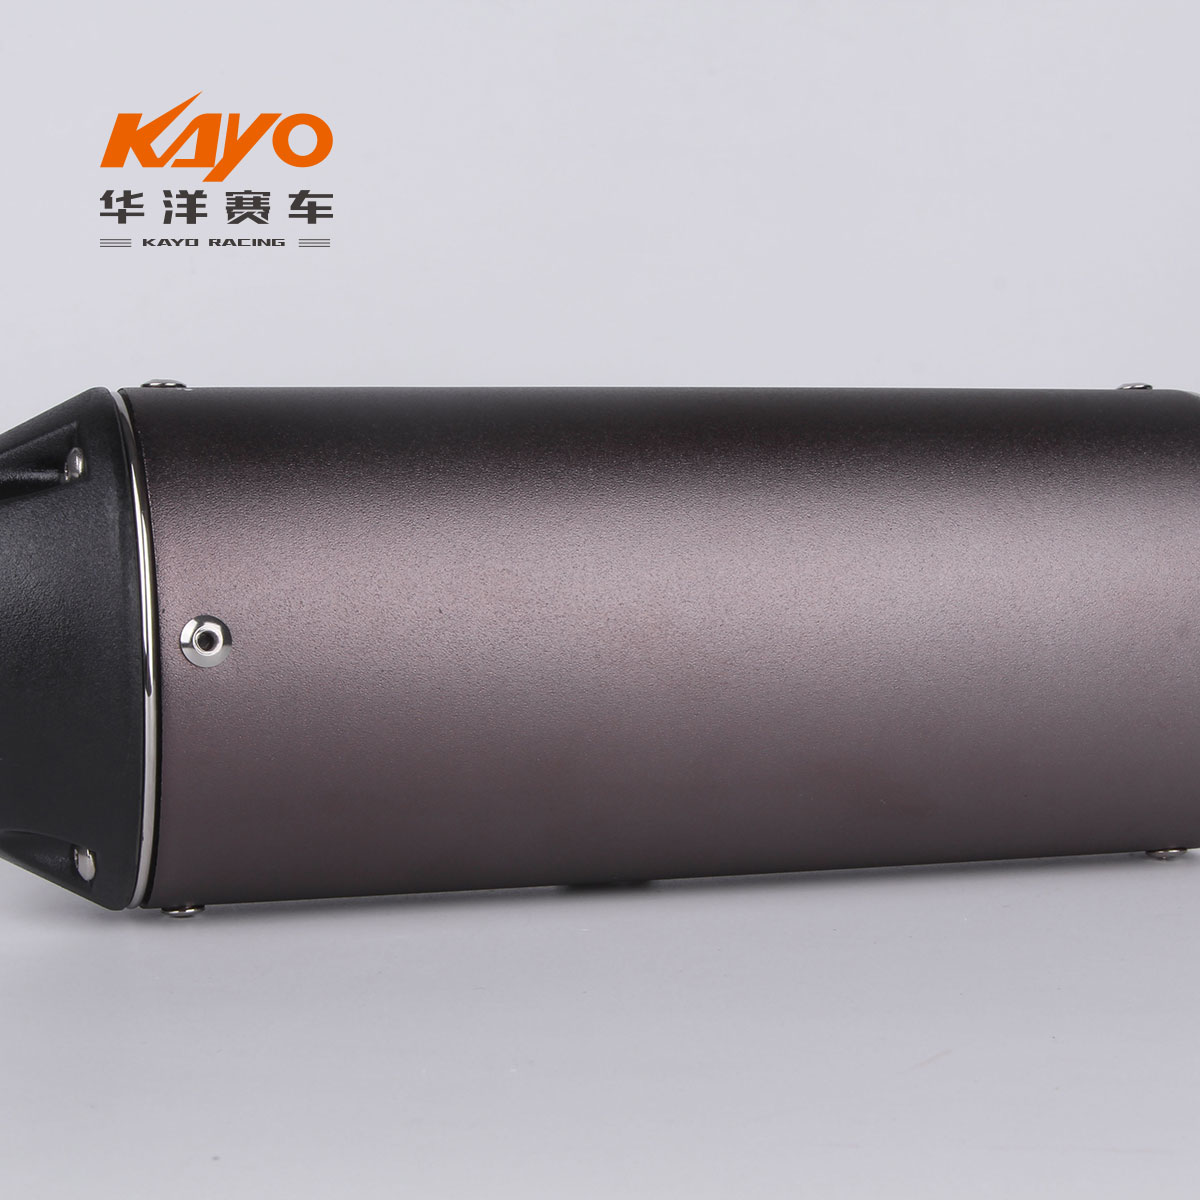 цена на Huayang kayo 2016 hk160r ty125 off-road motorcycle tube 125cc dirt pit bike muffler exhaust pipe